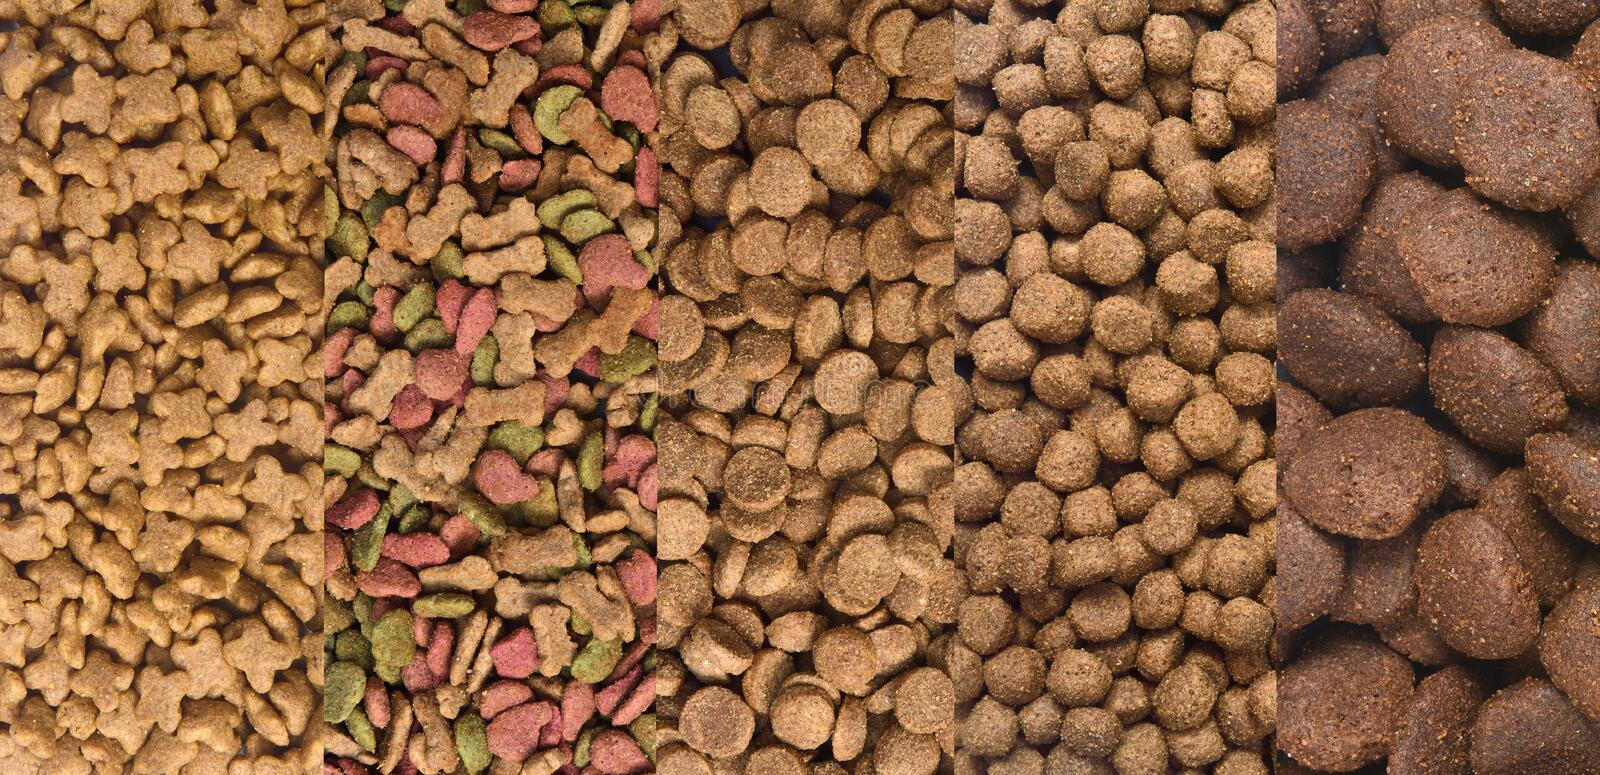 Different types of dog food.  royalty free stock photography